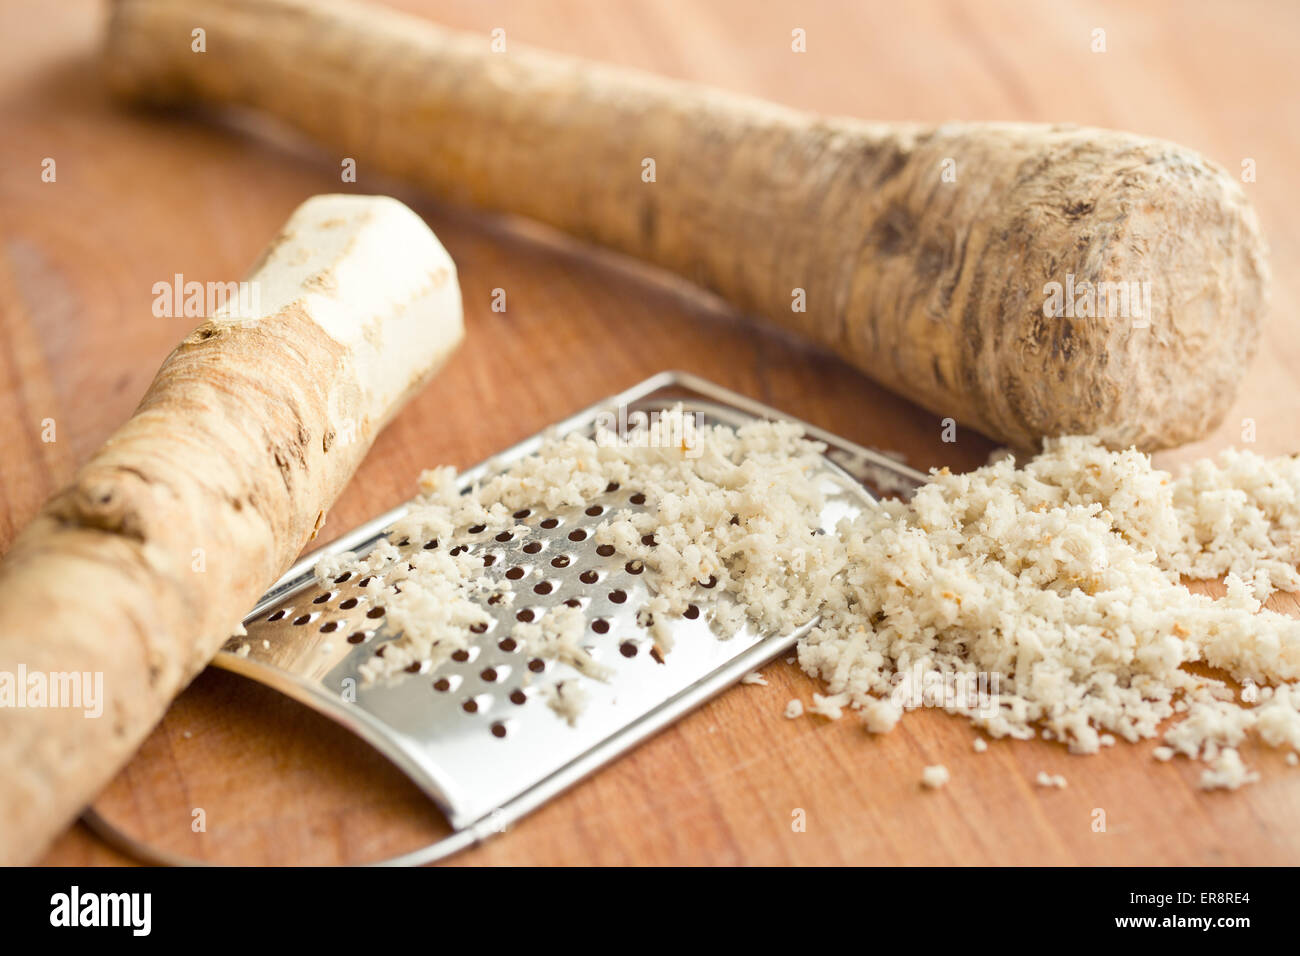 grated horseradish root on kitchen table - Stock Image